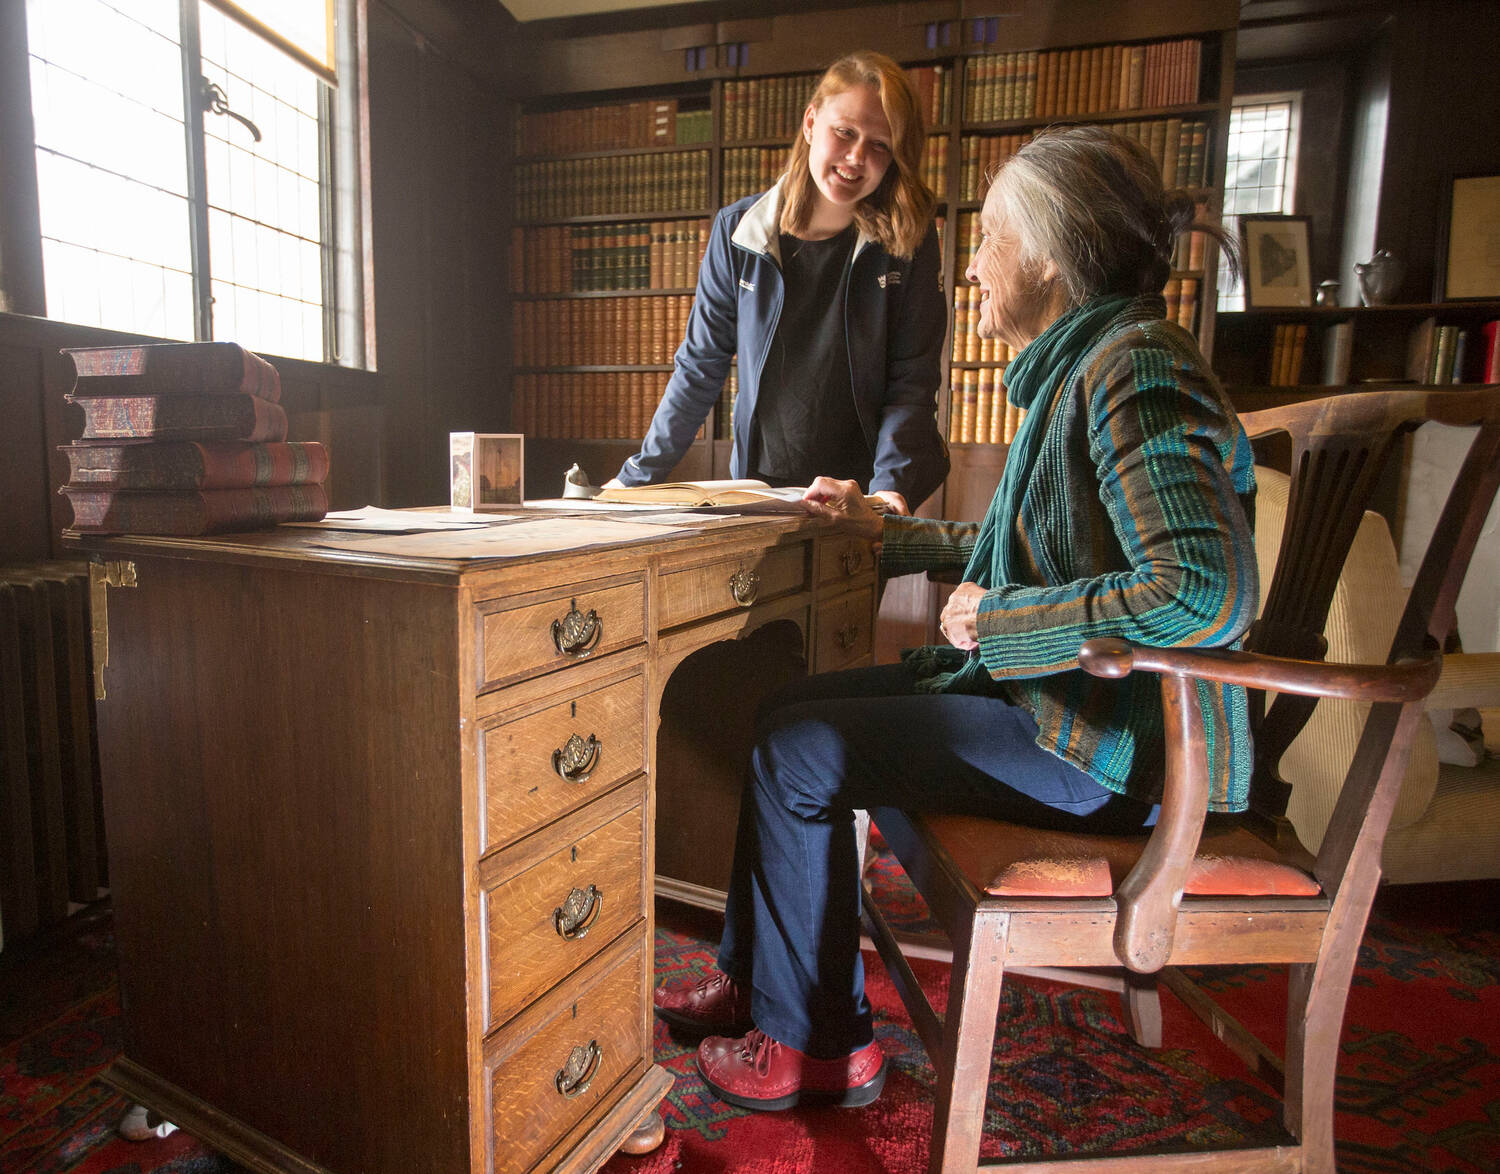 A lady sits at a wooden desk in a study, with a member of National Trust for Scotland staff standing beside her.